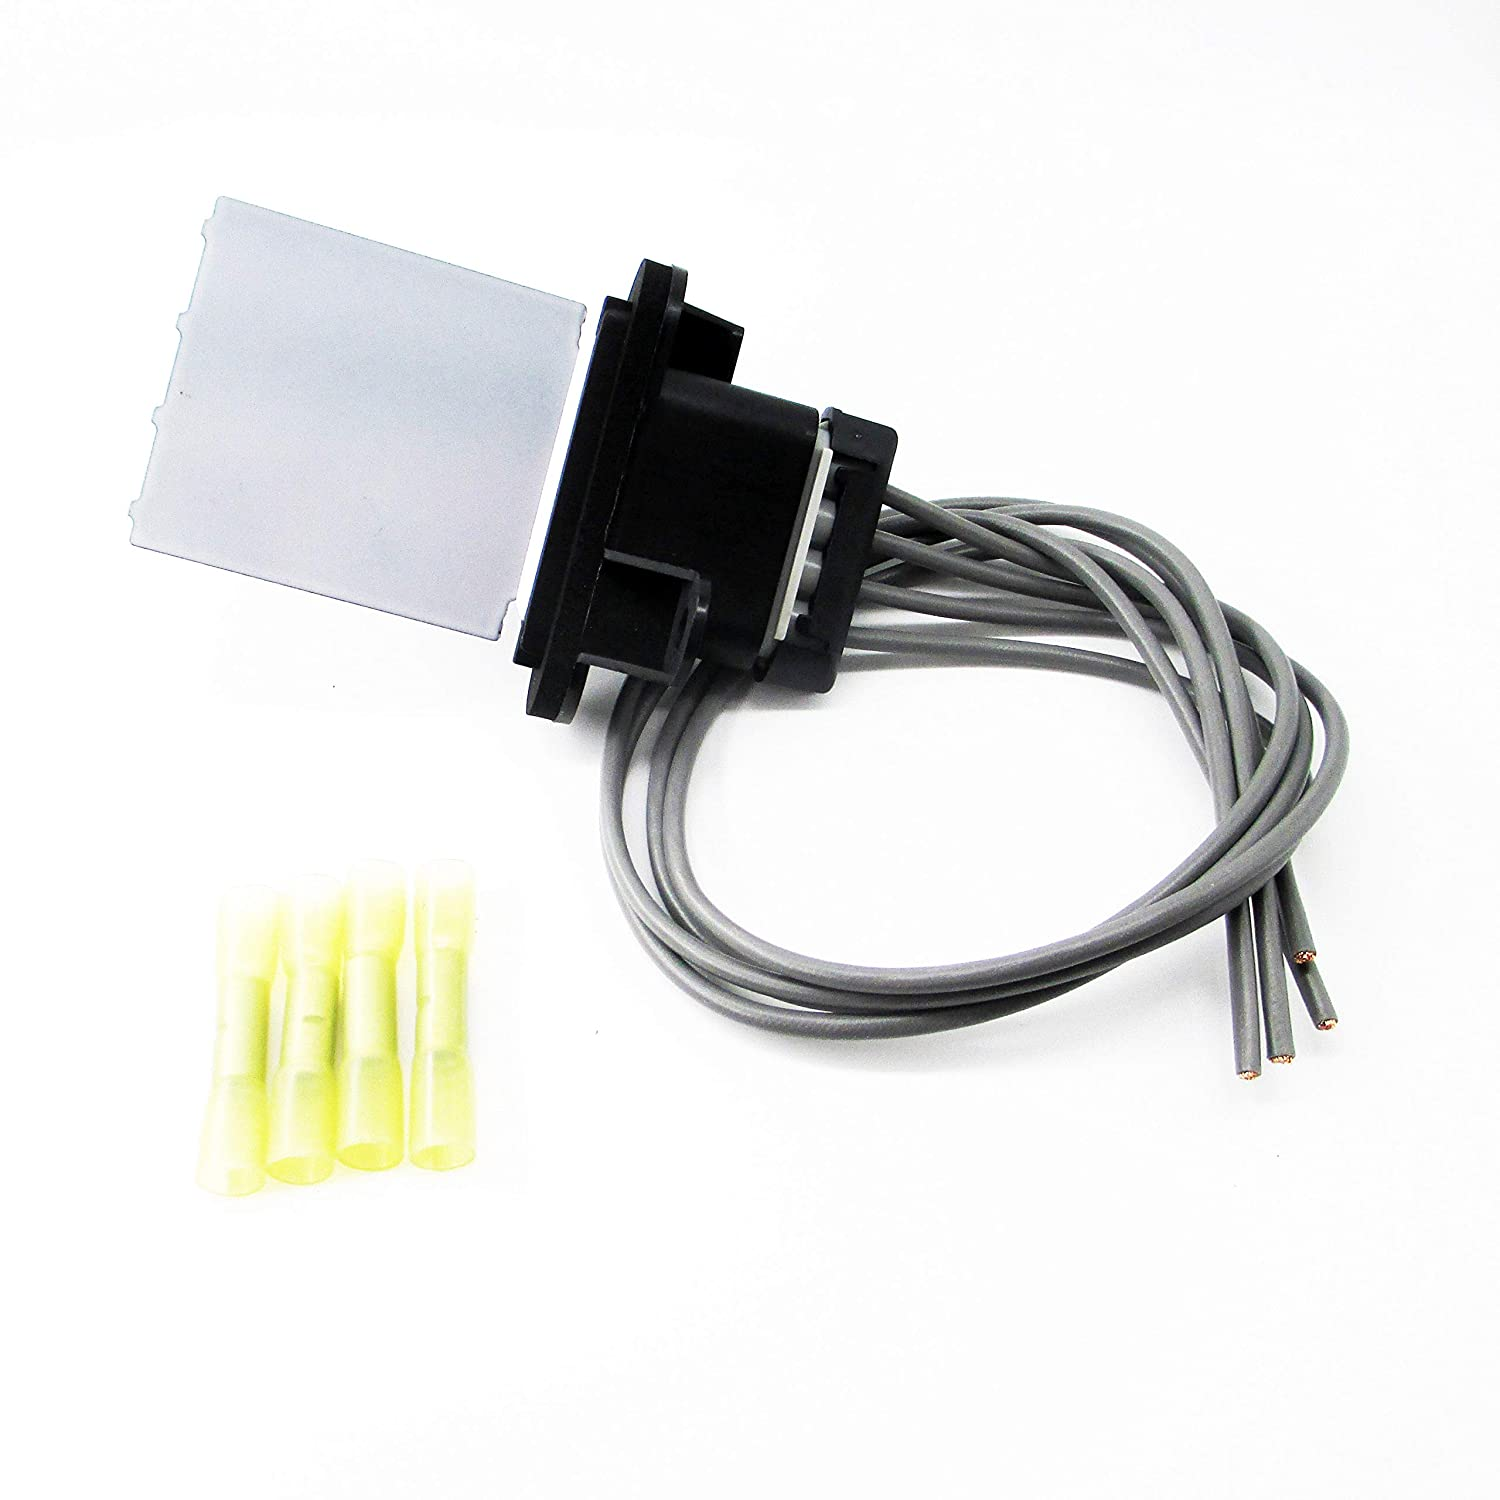 Blower Motor Resistor Kit With Wiring Harness for 2005-2017 Toyota Tacoma